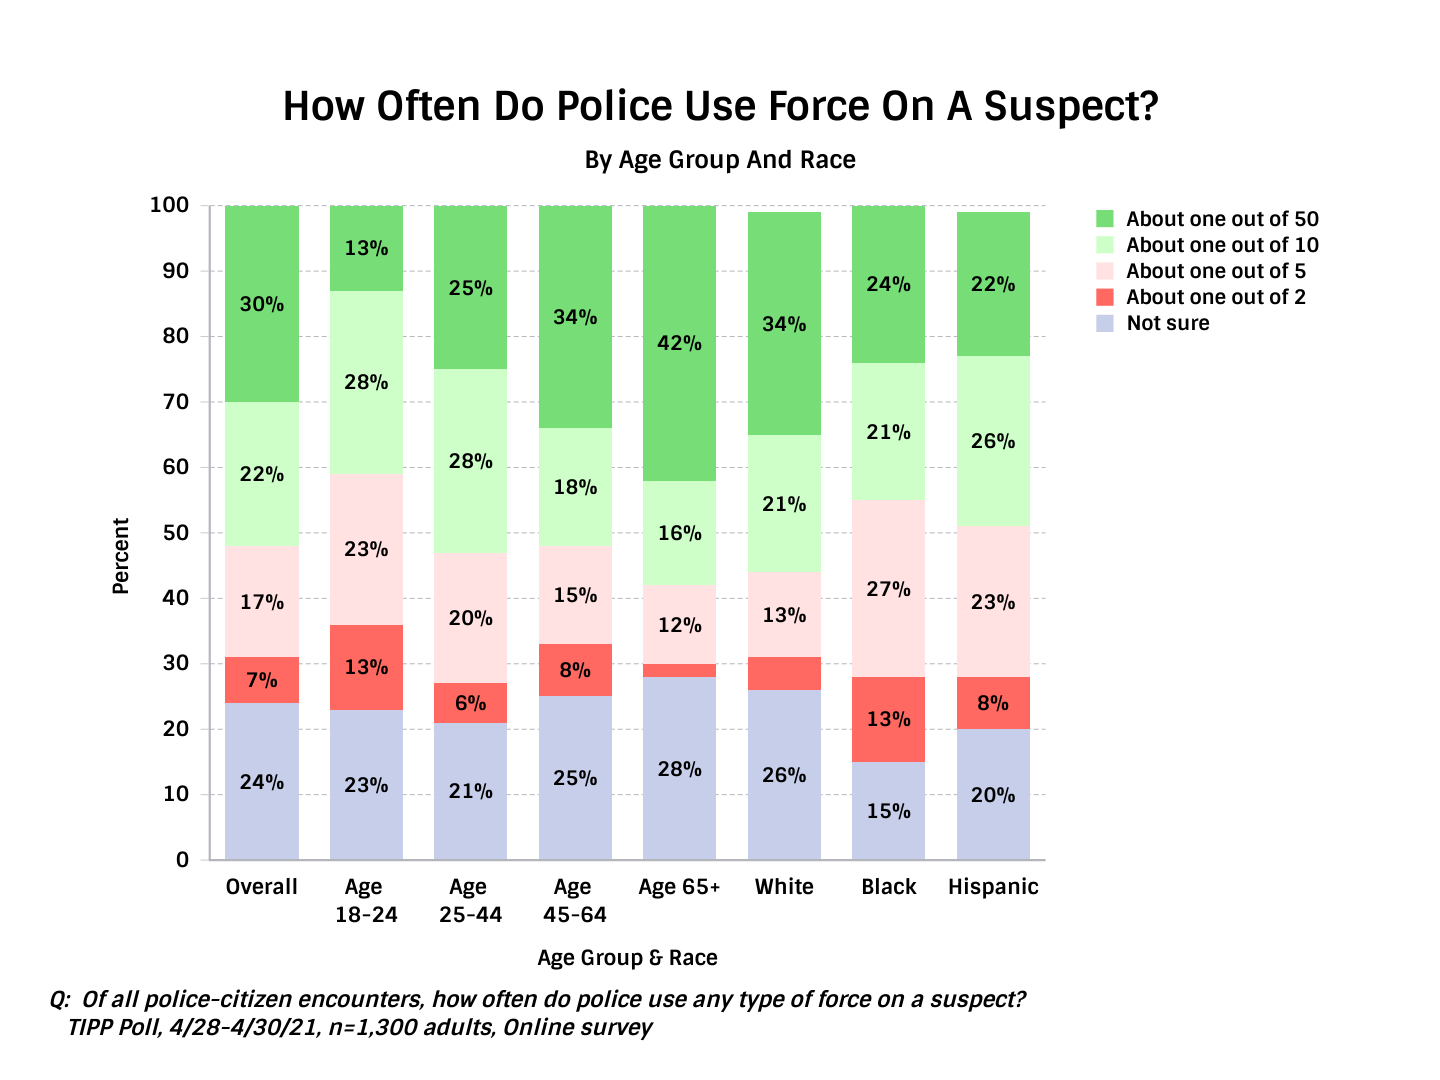 TIPP Poll Results  Asking Americans How Often Do They Think Police Use Force